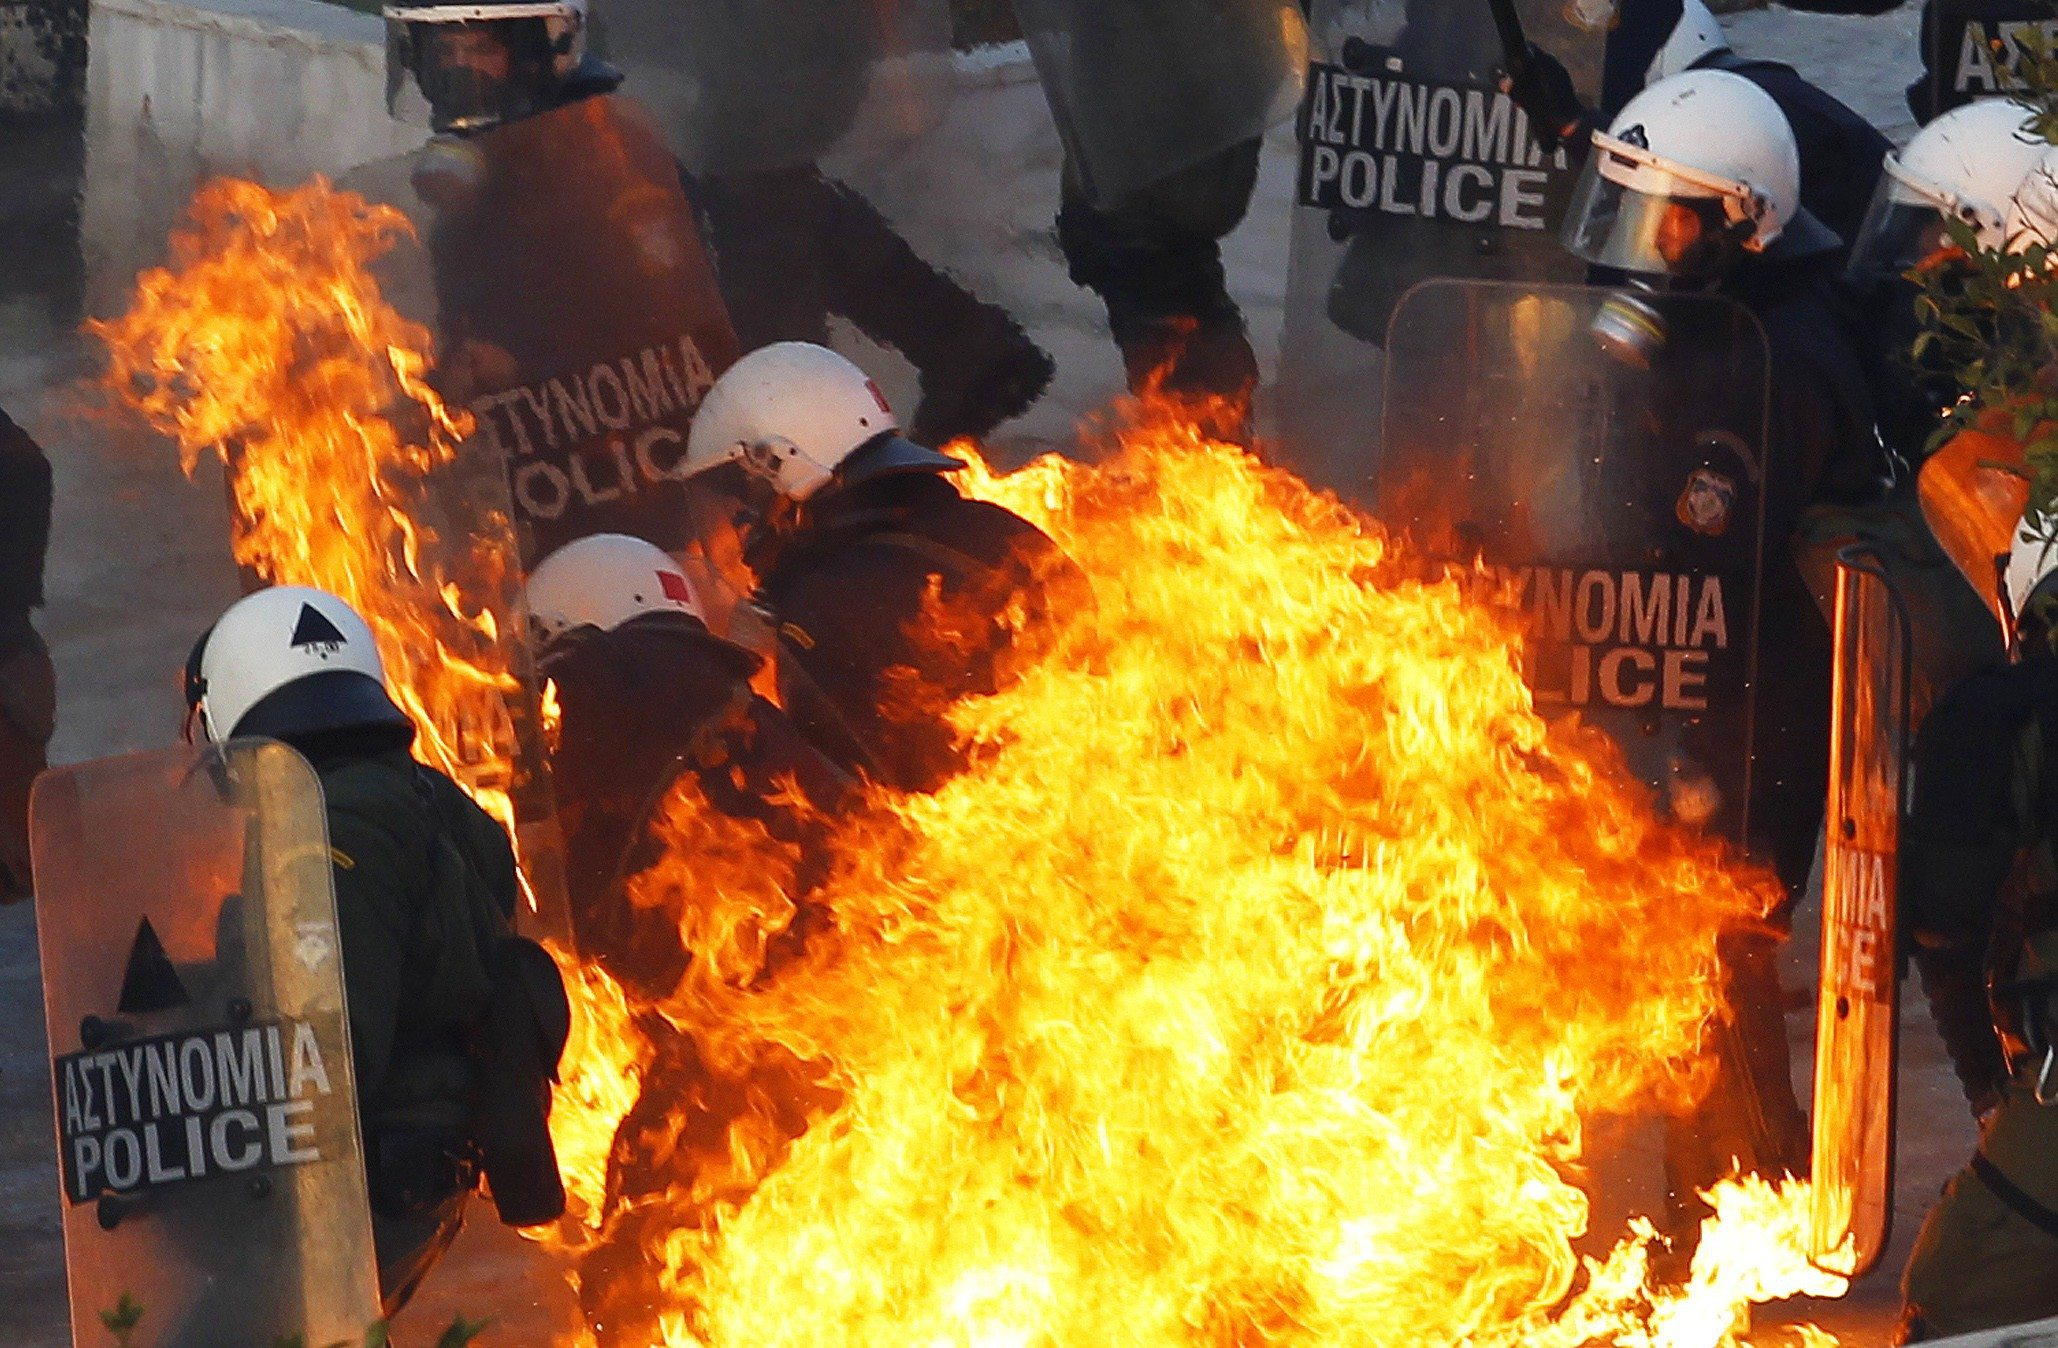 REUTERS/Yannis Behrakis. A petrol bomb explodes at riot police during an anti-austerity demonstration in Athens' Syntagma Square.